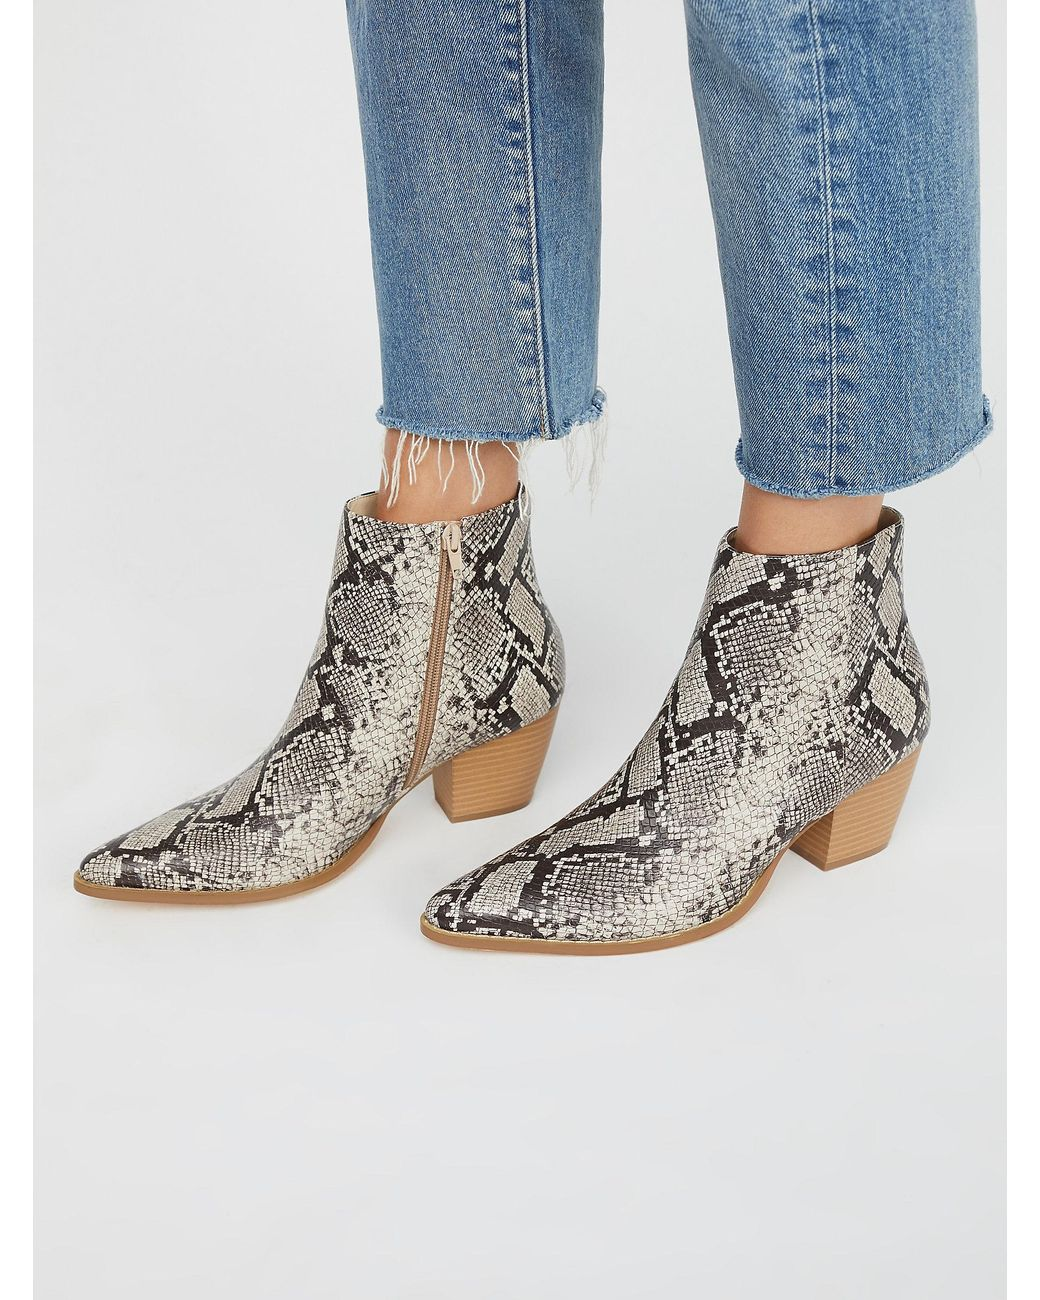 Leather Vegan Going West Boot - Lyst